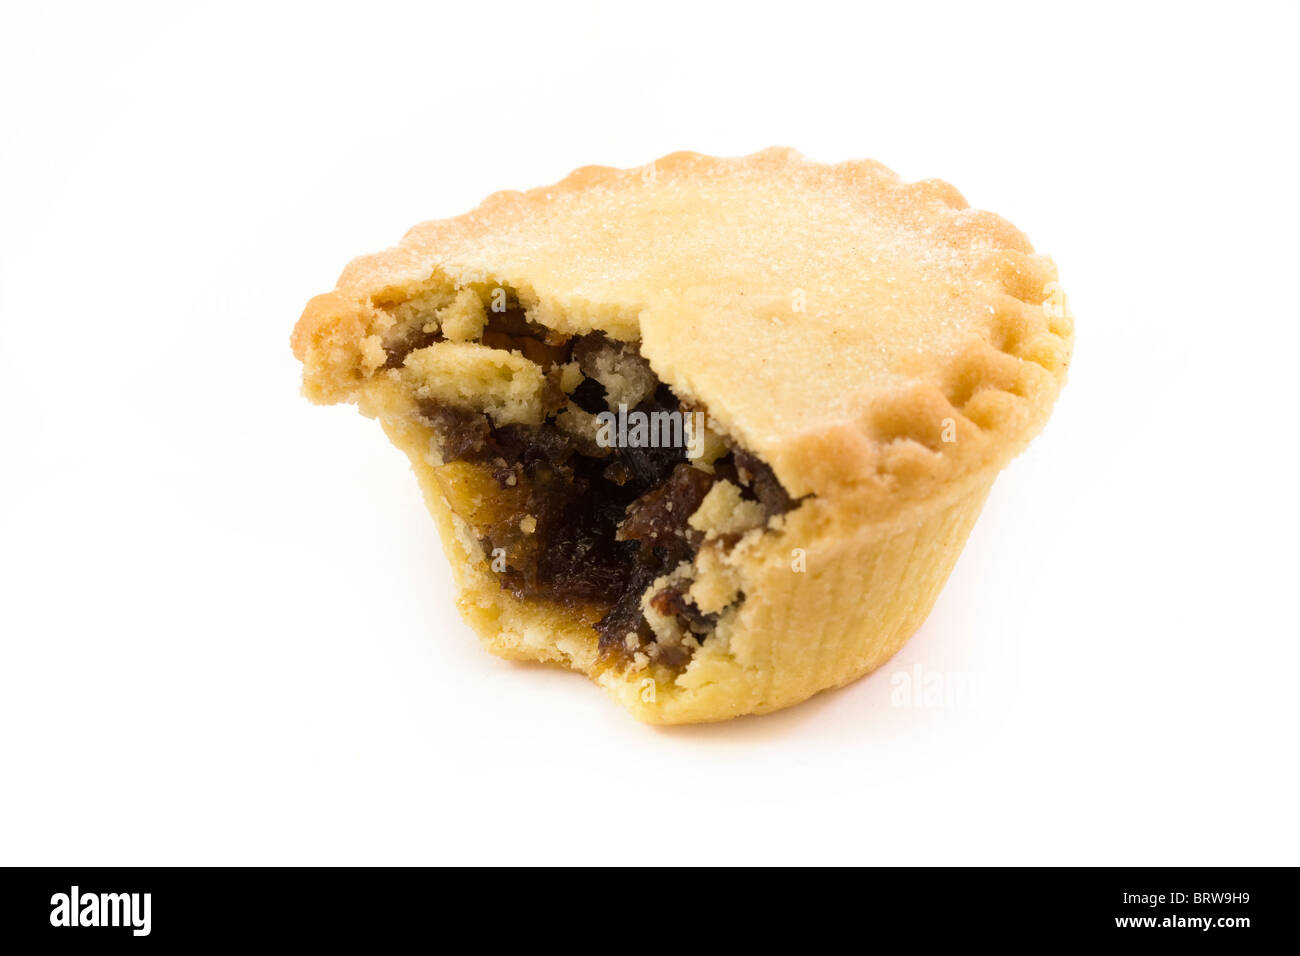 single mince pie with a missing bite - Stock Image